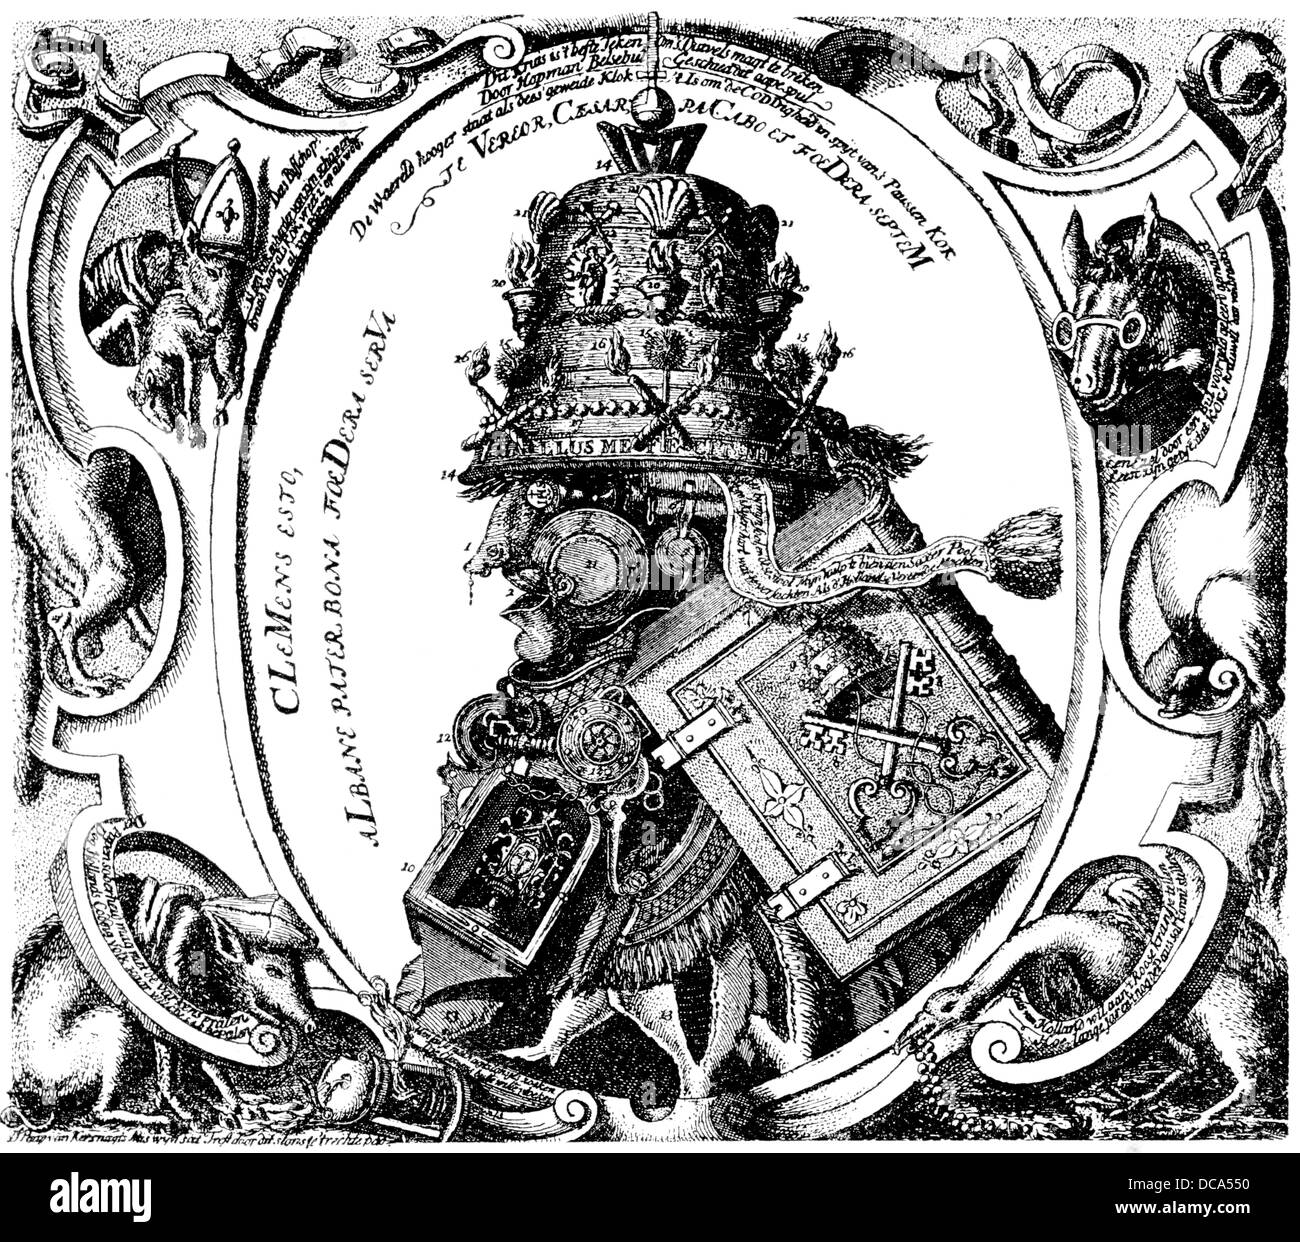 Dutch caricature of the medieval papacy from the 16th Century - Stock Image